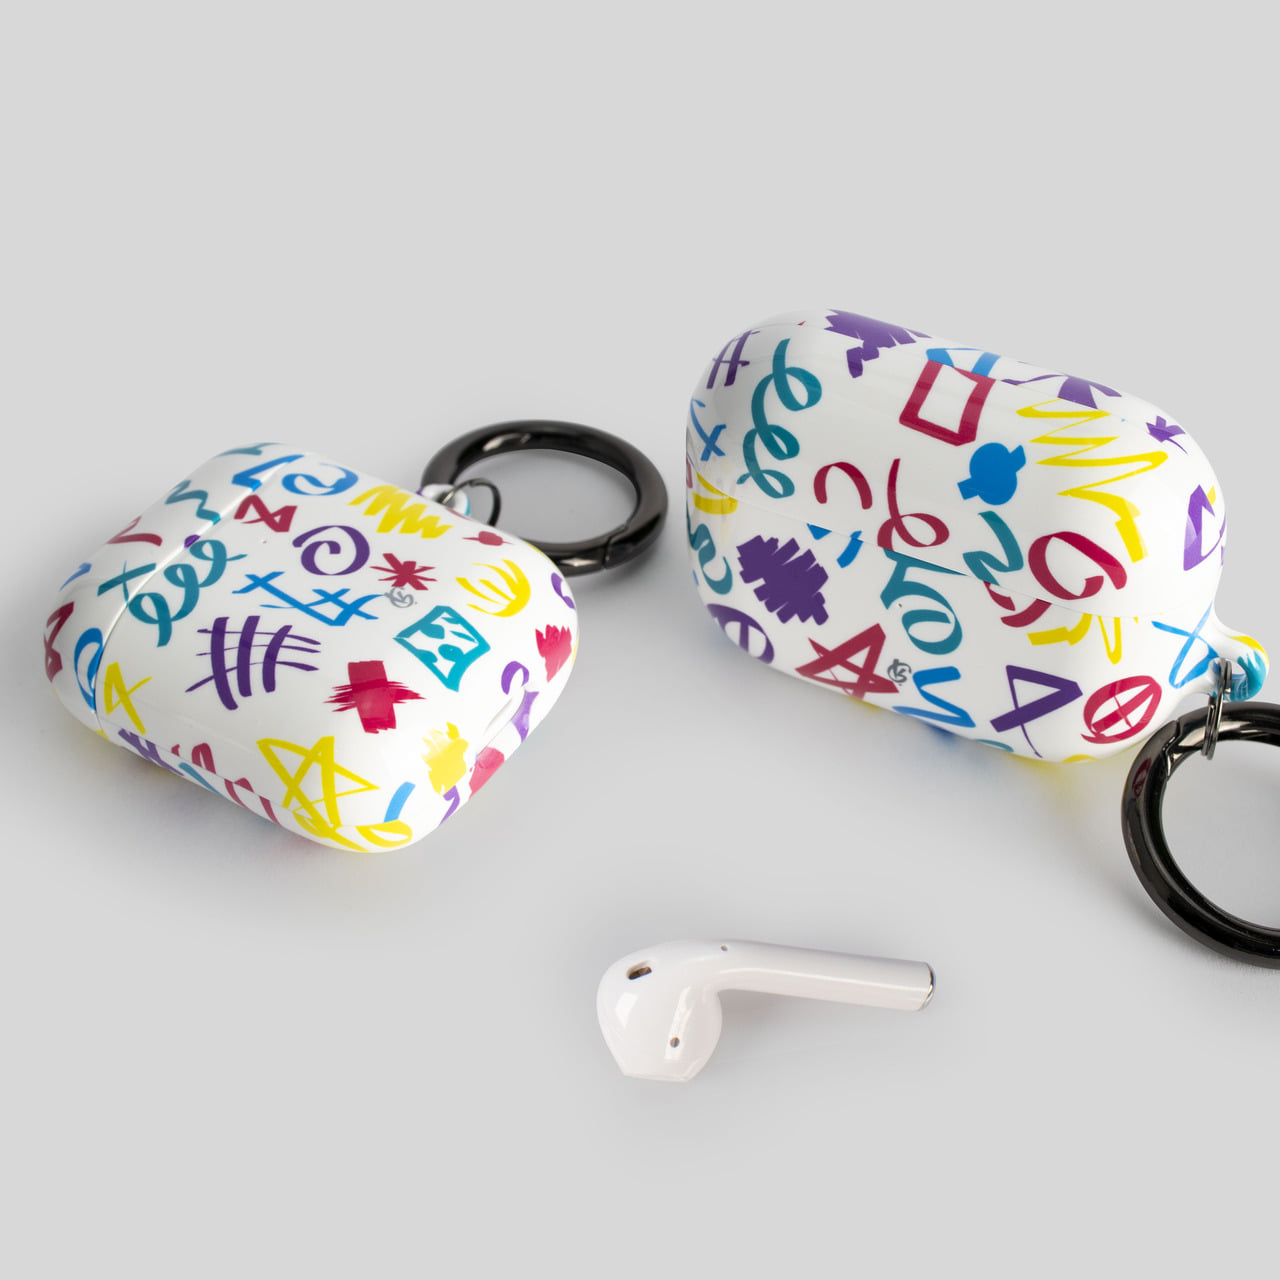 [Airpods cases] Purity No.09